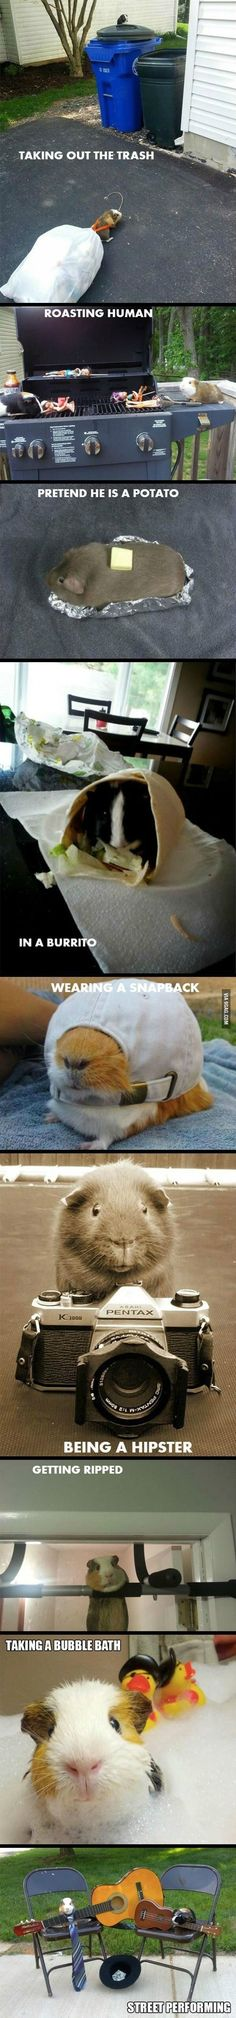 What Can a Guinea Pig Do?